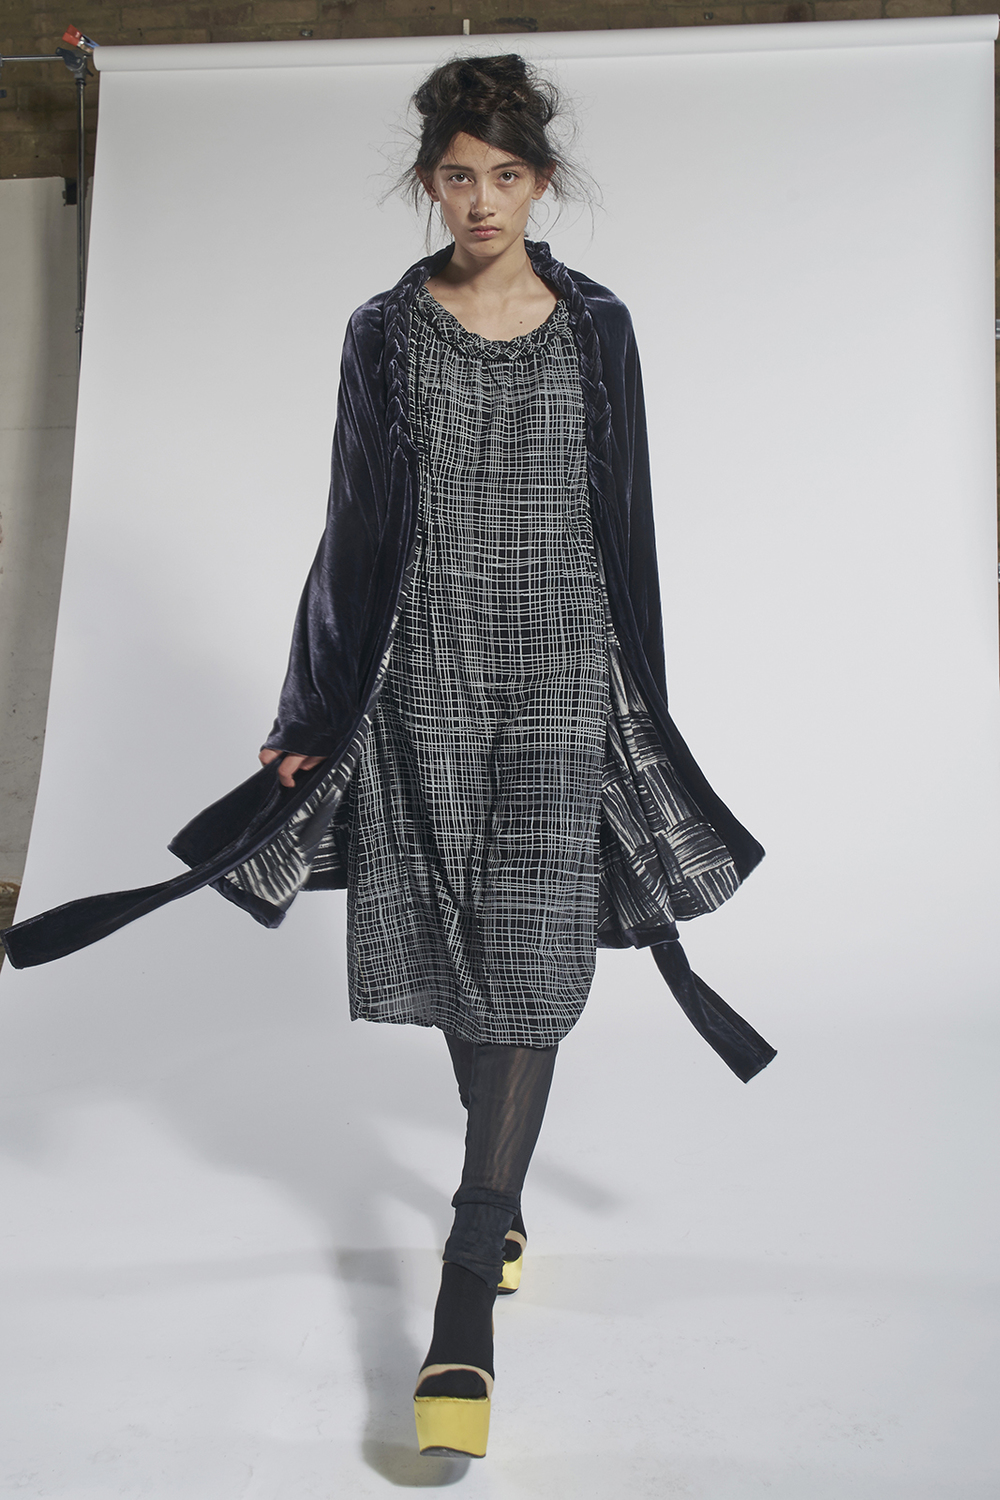 801/A159035 Velvet Plait Coat 236/A151555 Gathered Plait Dress